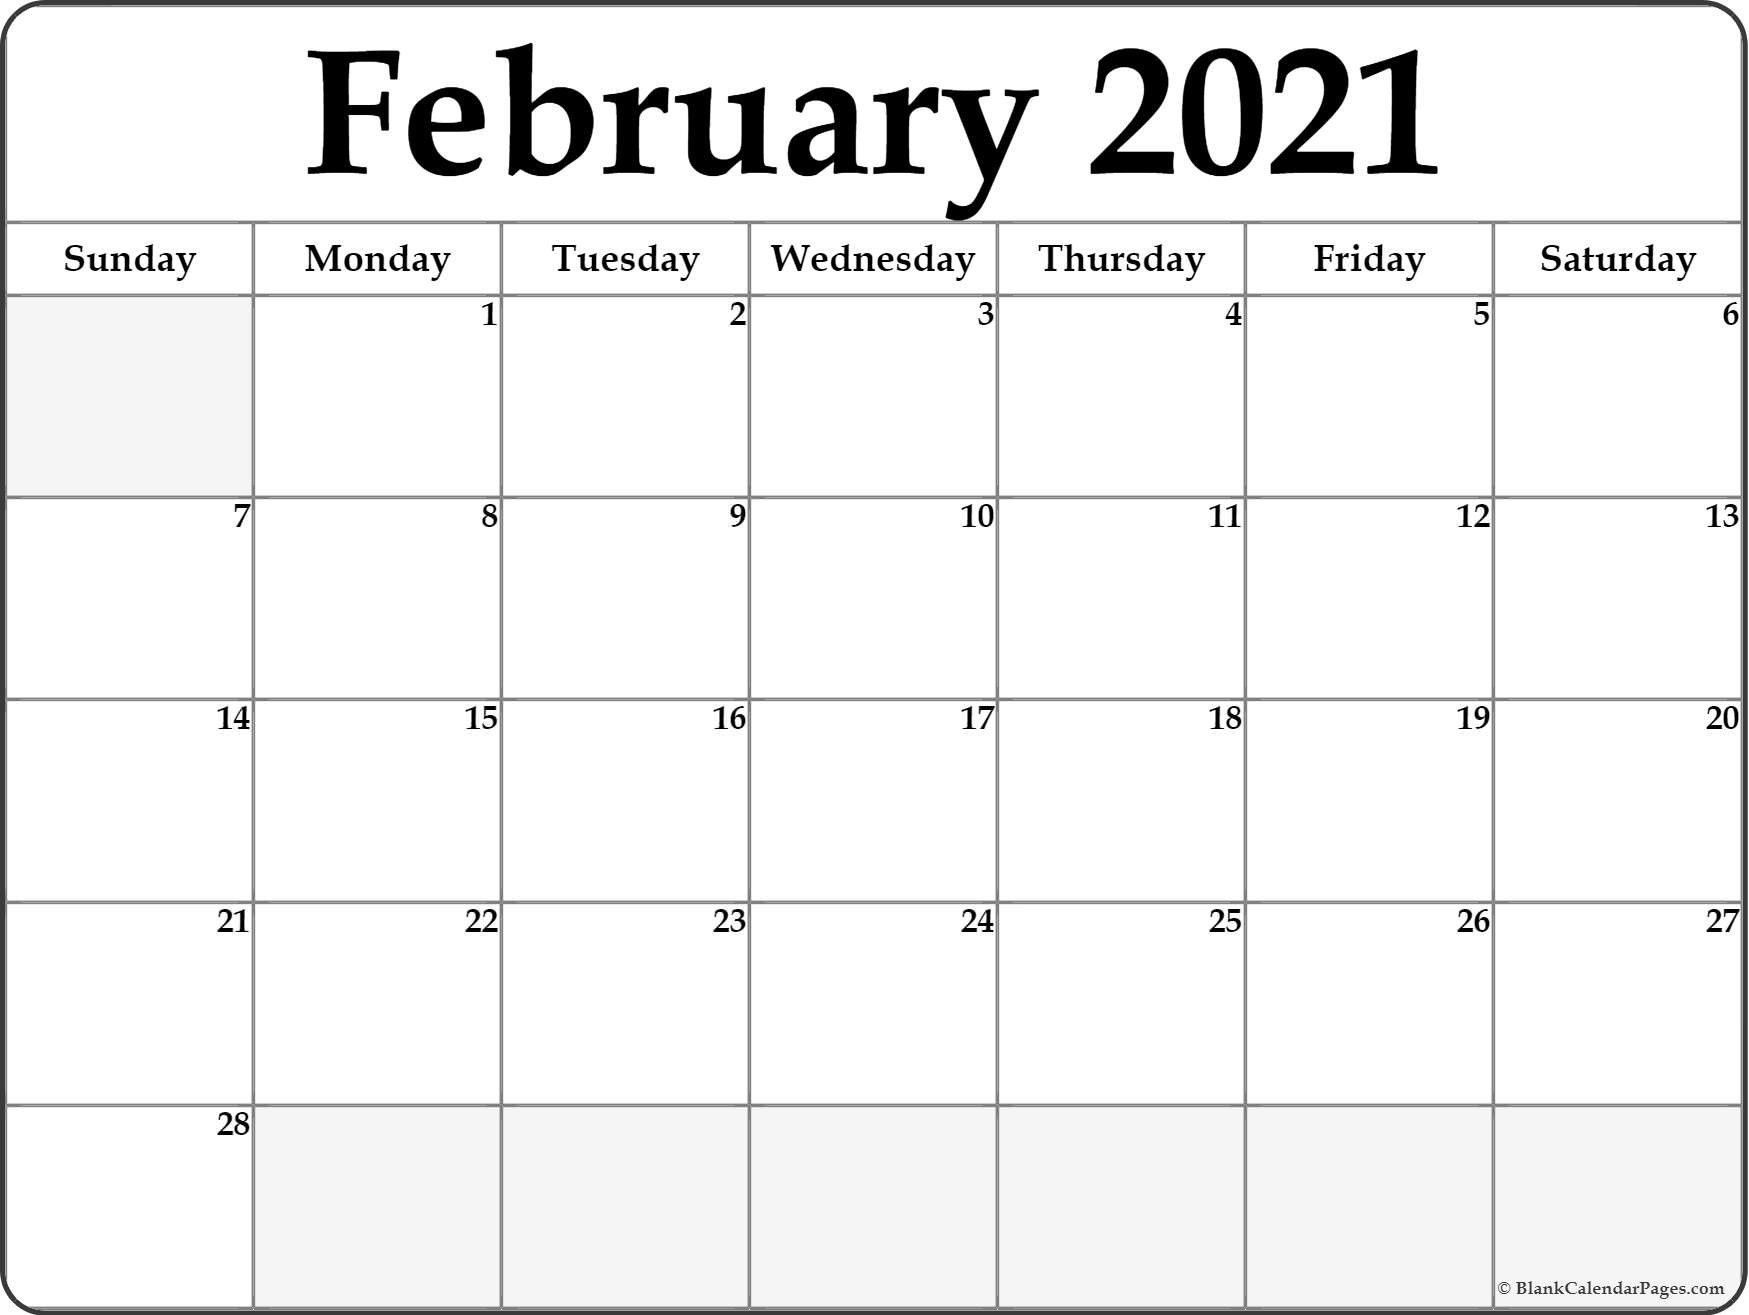 Calendar 2021 January February Blank   February Calendar-2021 Monthly Fill In The Blanks Print Out